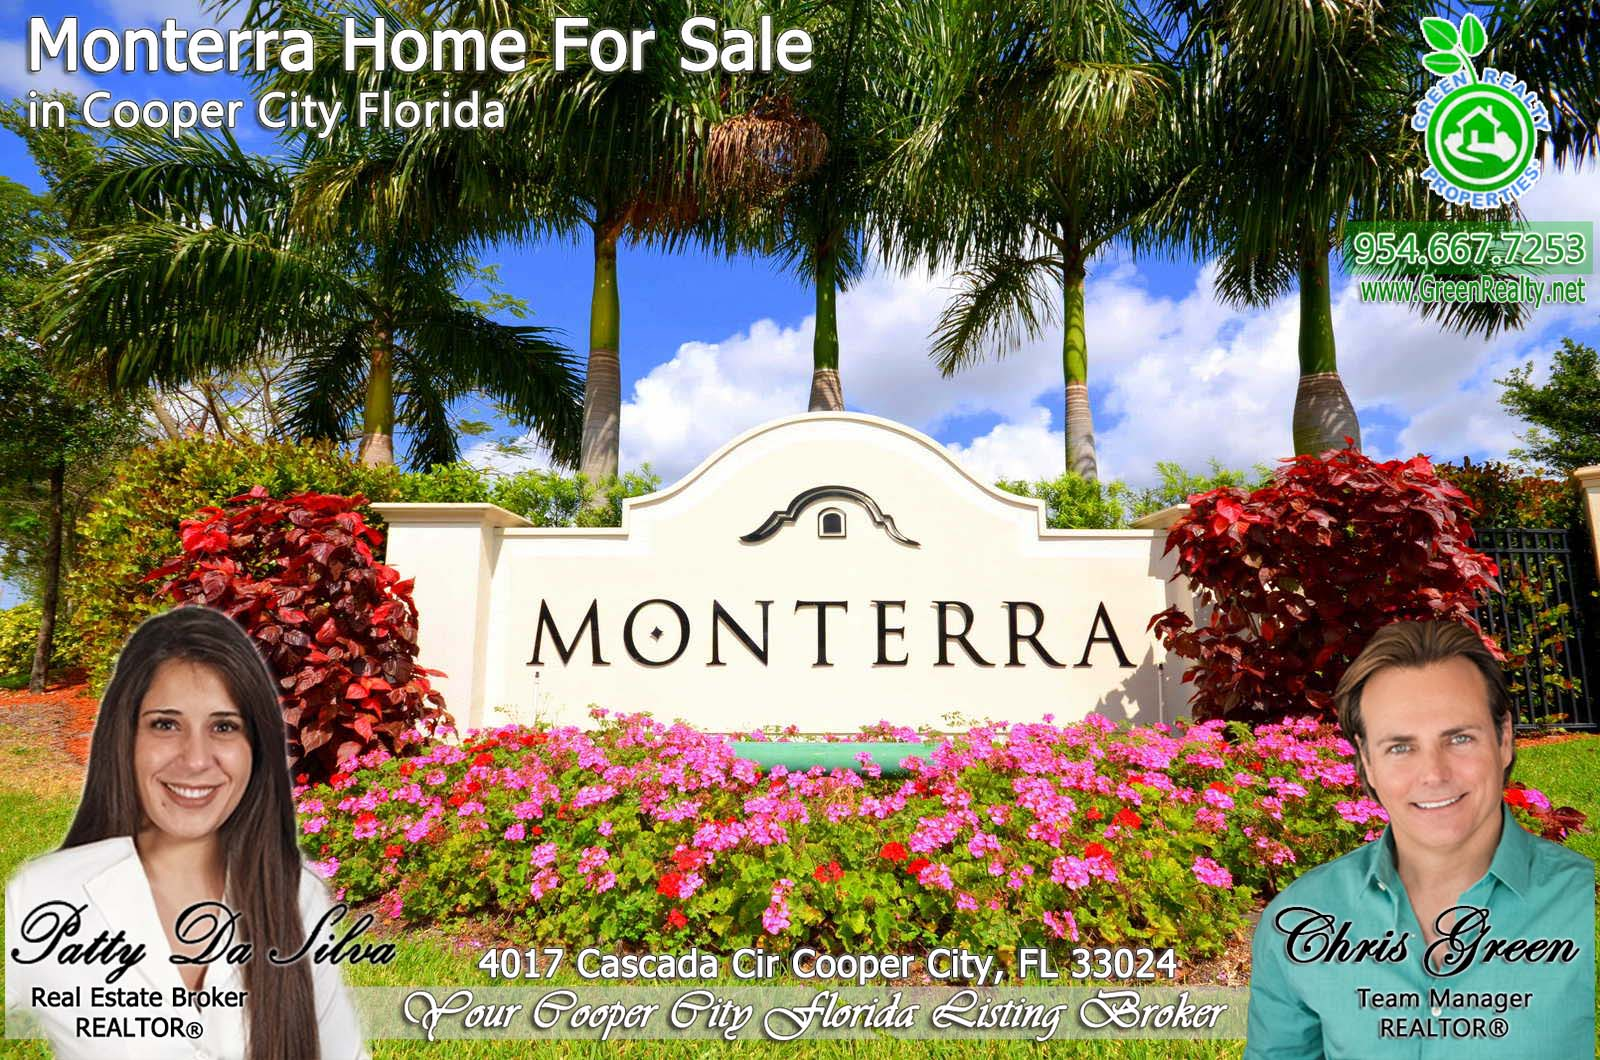 26 monterra properties for sale